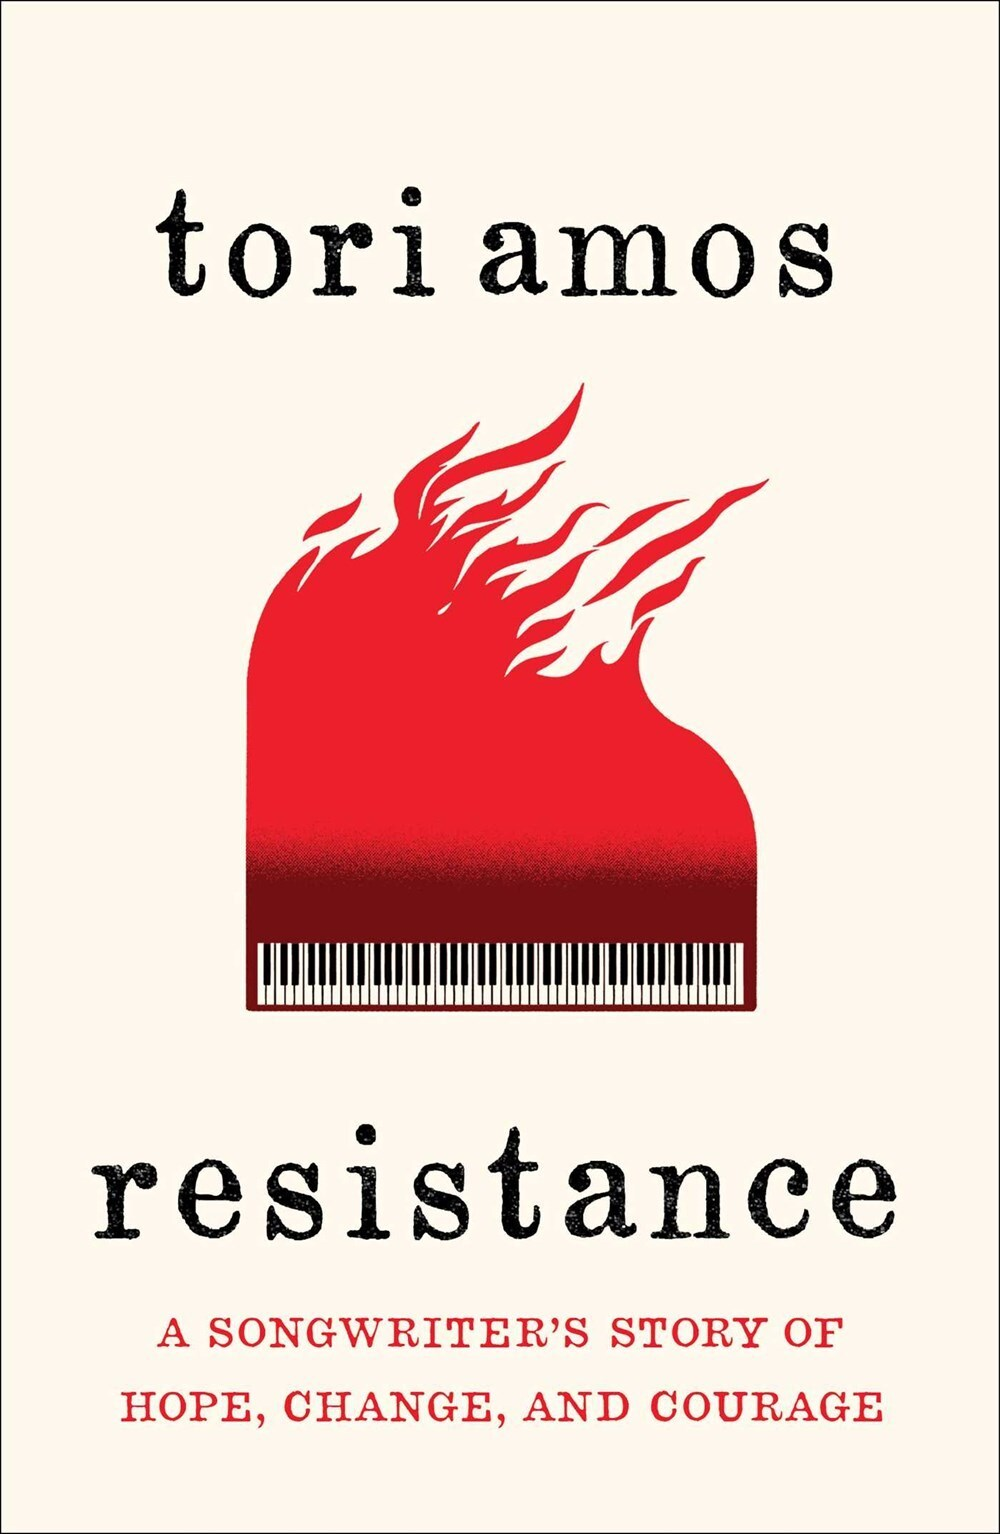 Resistance A Songwriter's Story of Hope, Change, and Courage